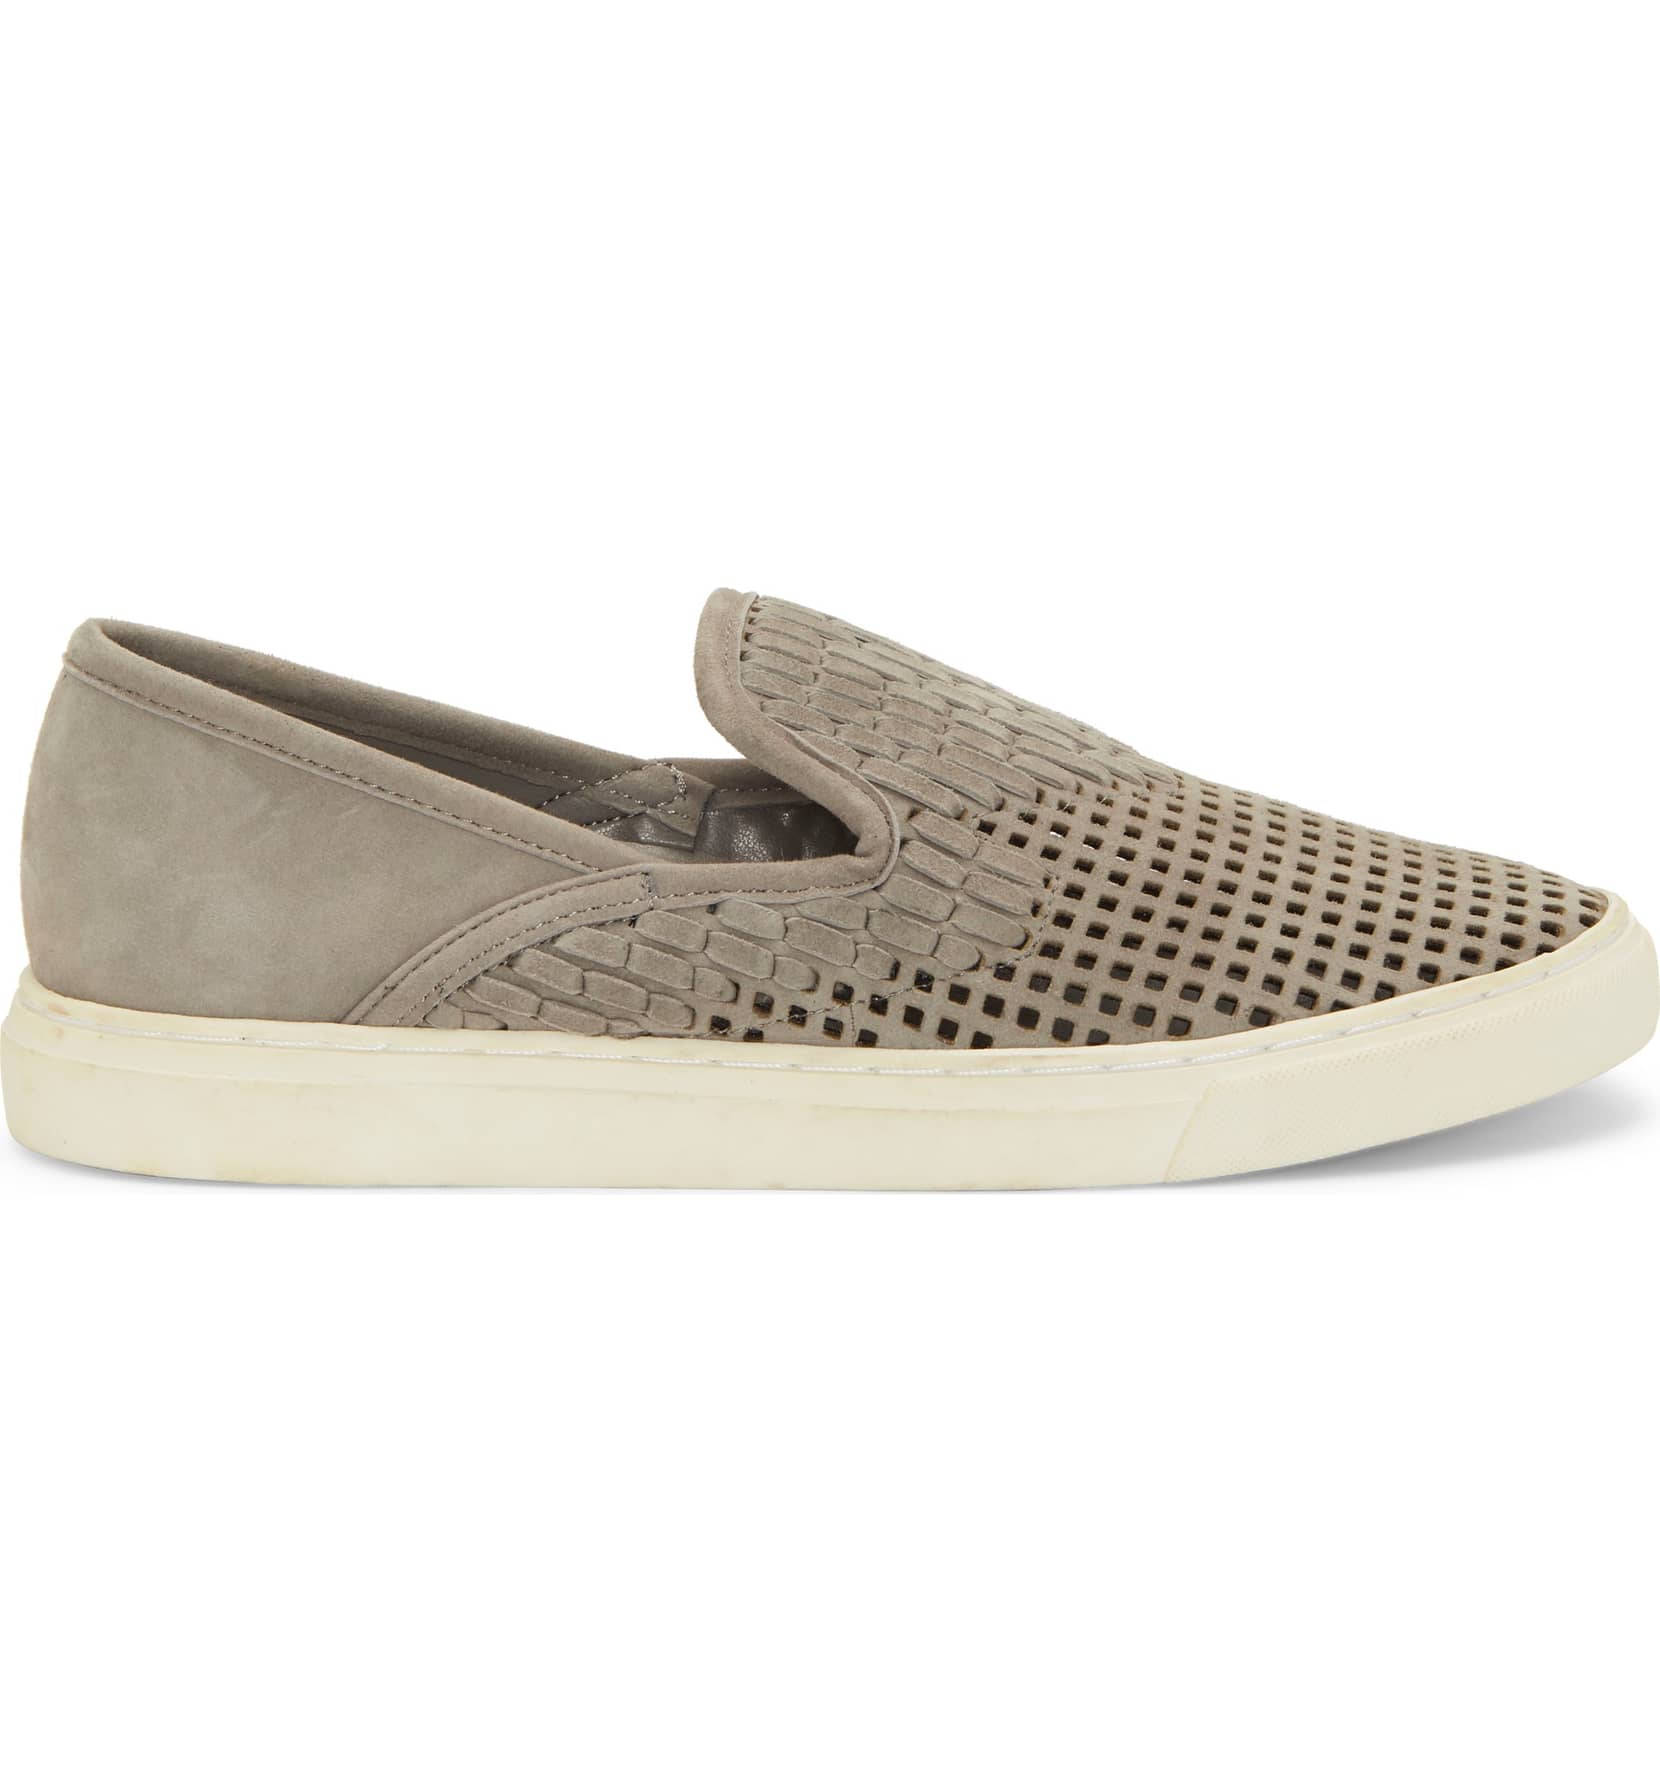 Vince-Camuto-Bristie-Storm-Grey-Leather-Woven-White-Sole-Slip-On-Sneakers thumbnail 23